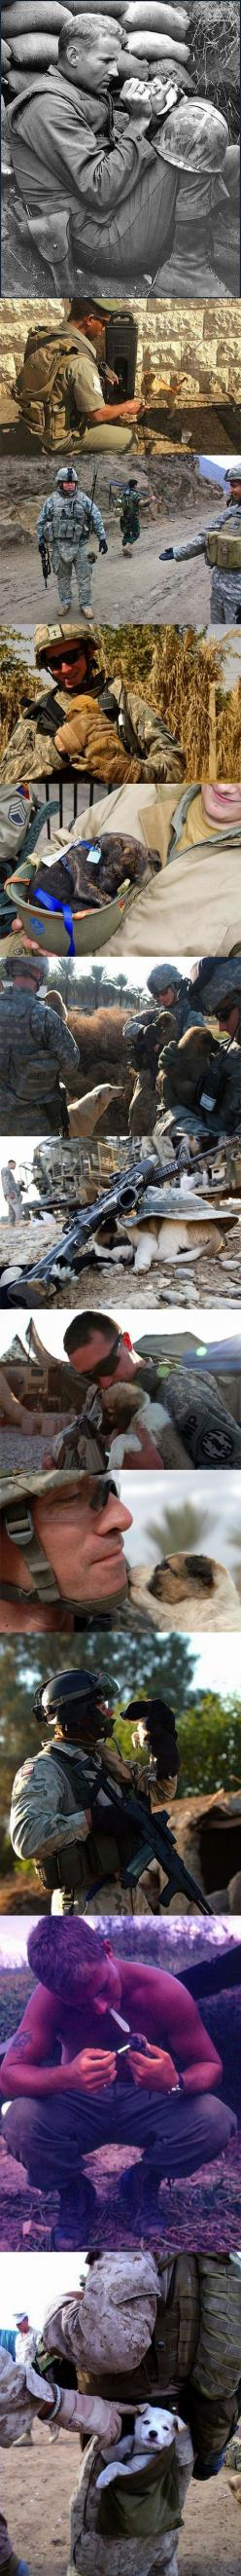 So cute....: Soldiers, Best Friends, Hero, Sweet, My Heart, Real Men, Dog, Man, Animal